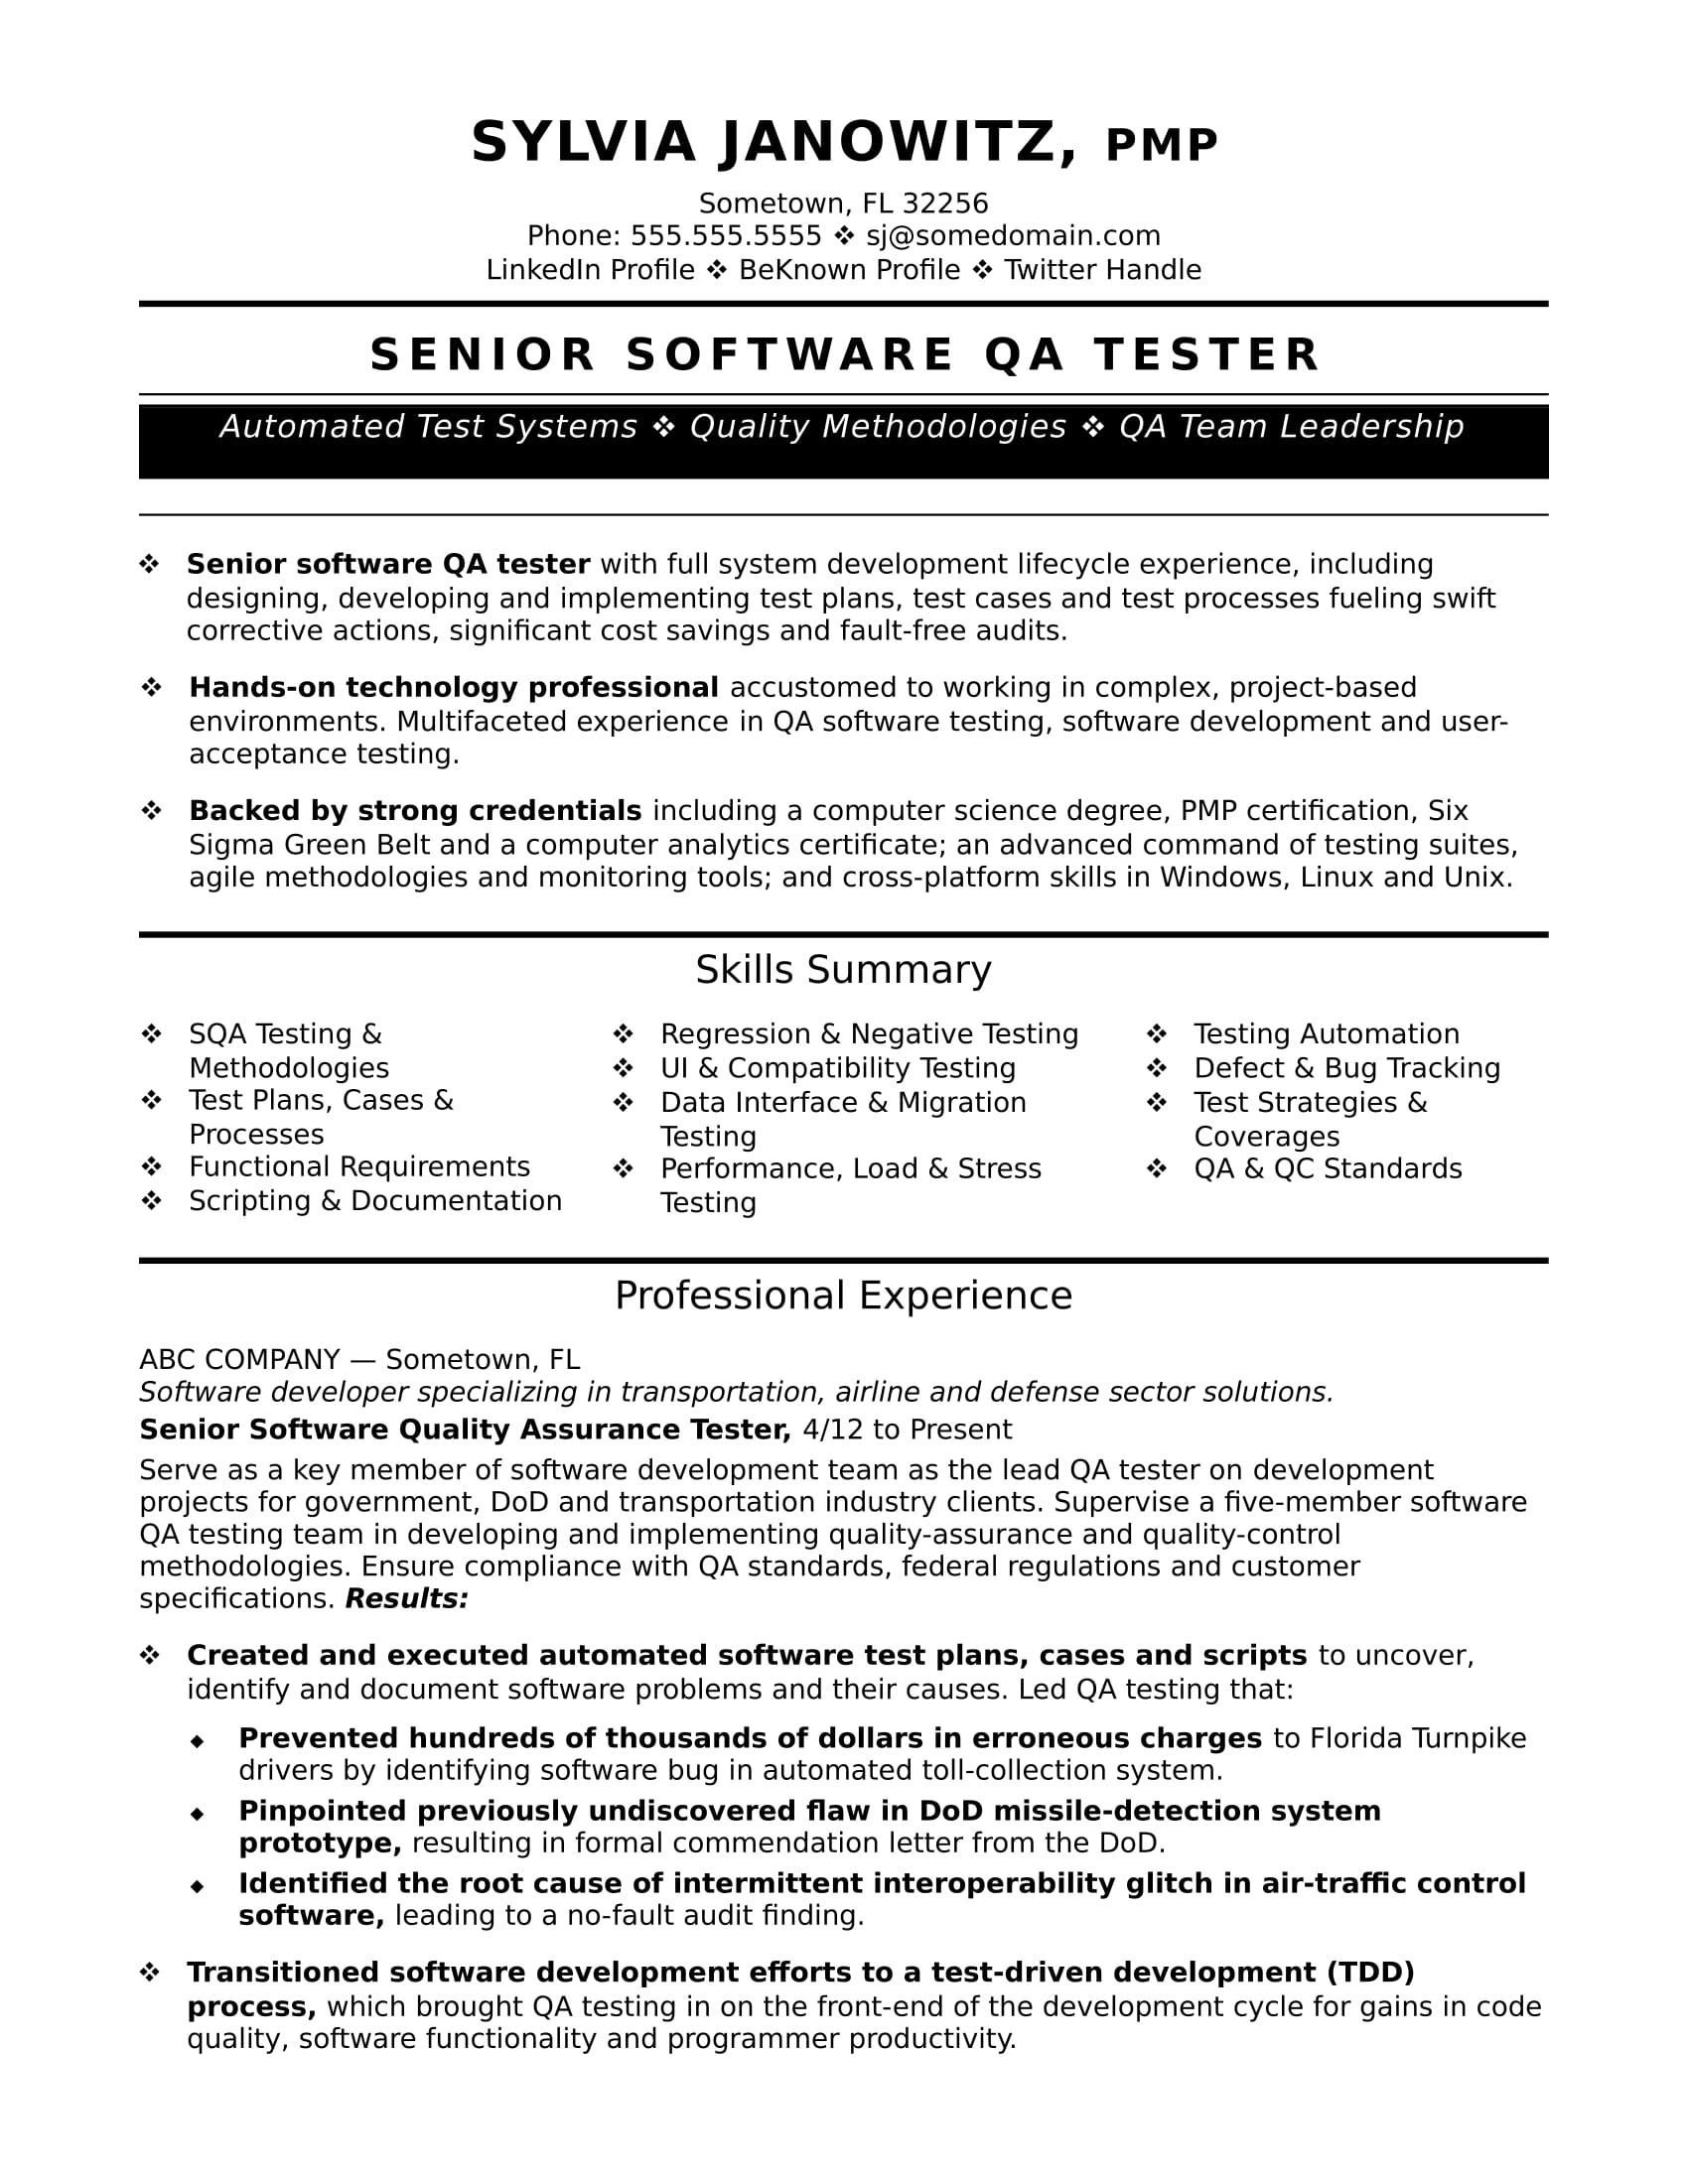 Resume Templates For Qa Tester Resume Templates in 2020